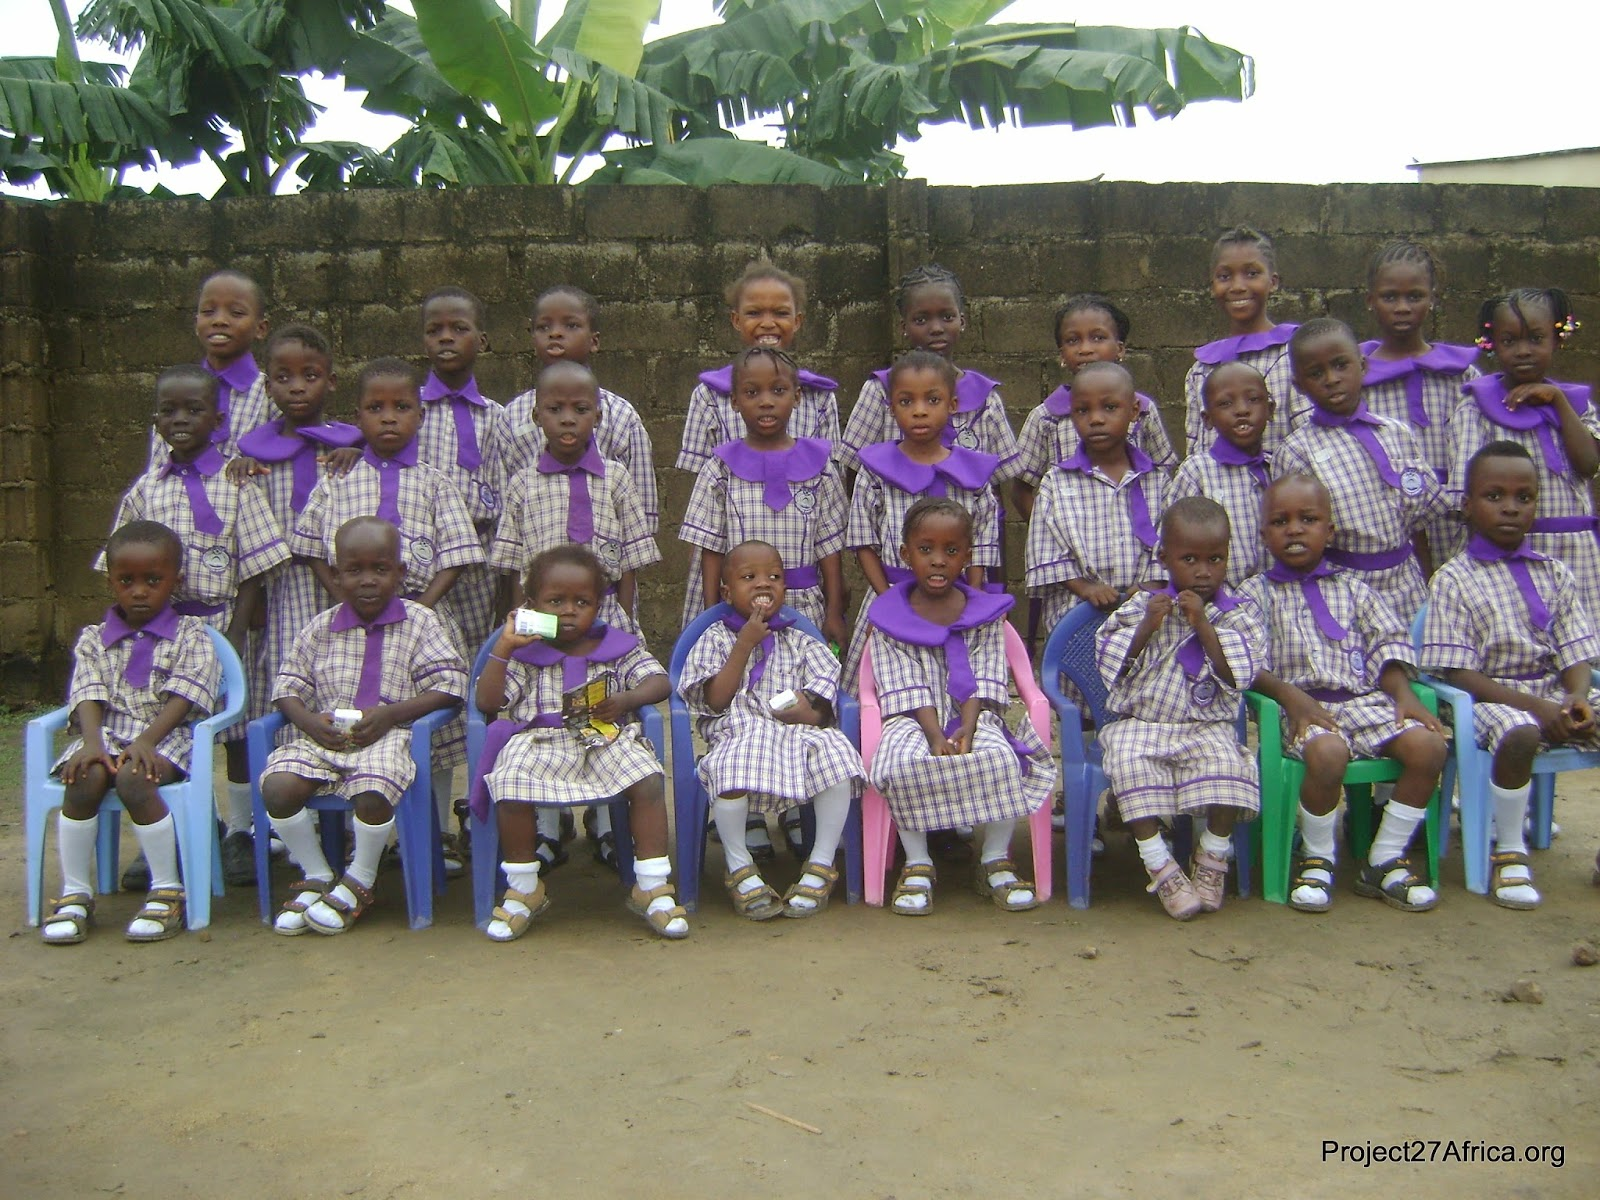 Pics: AY Comedian Donates Uniforms To Primary School Pupils